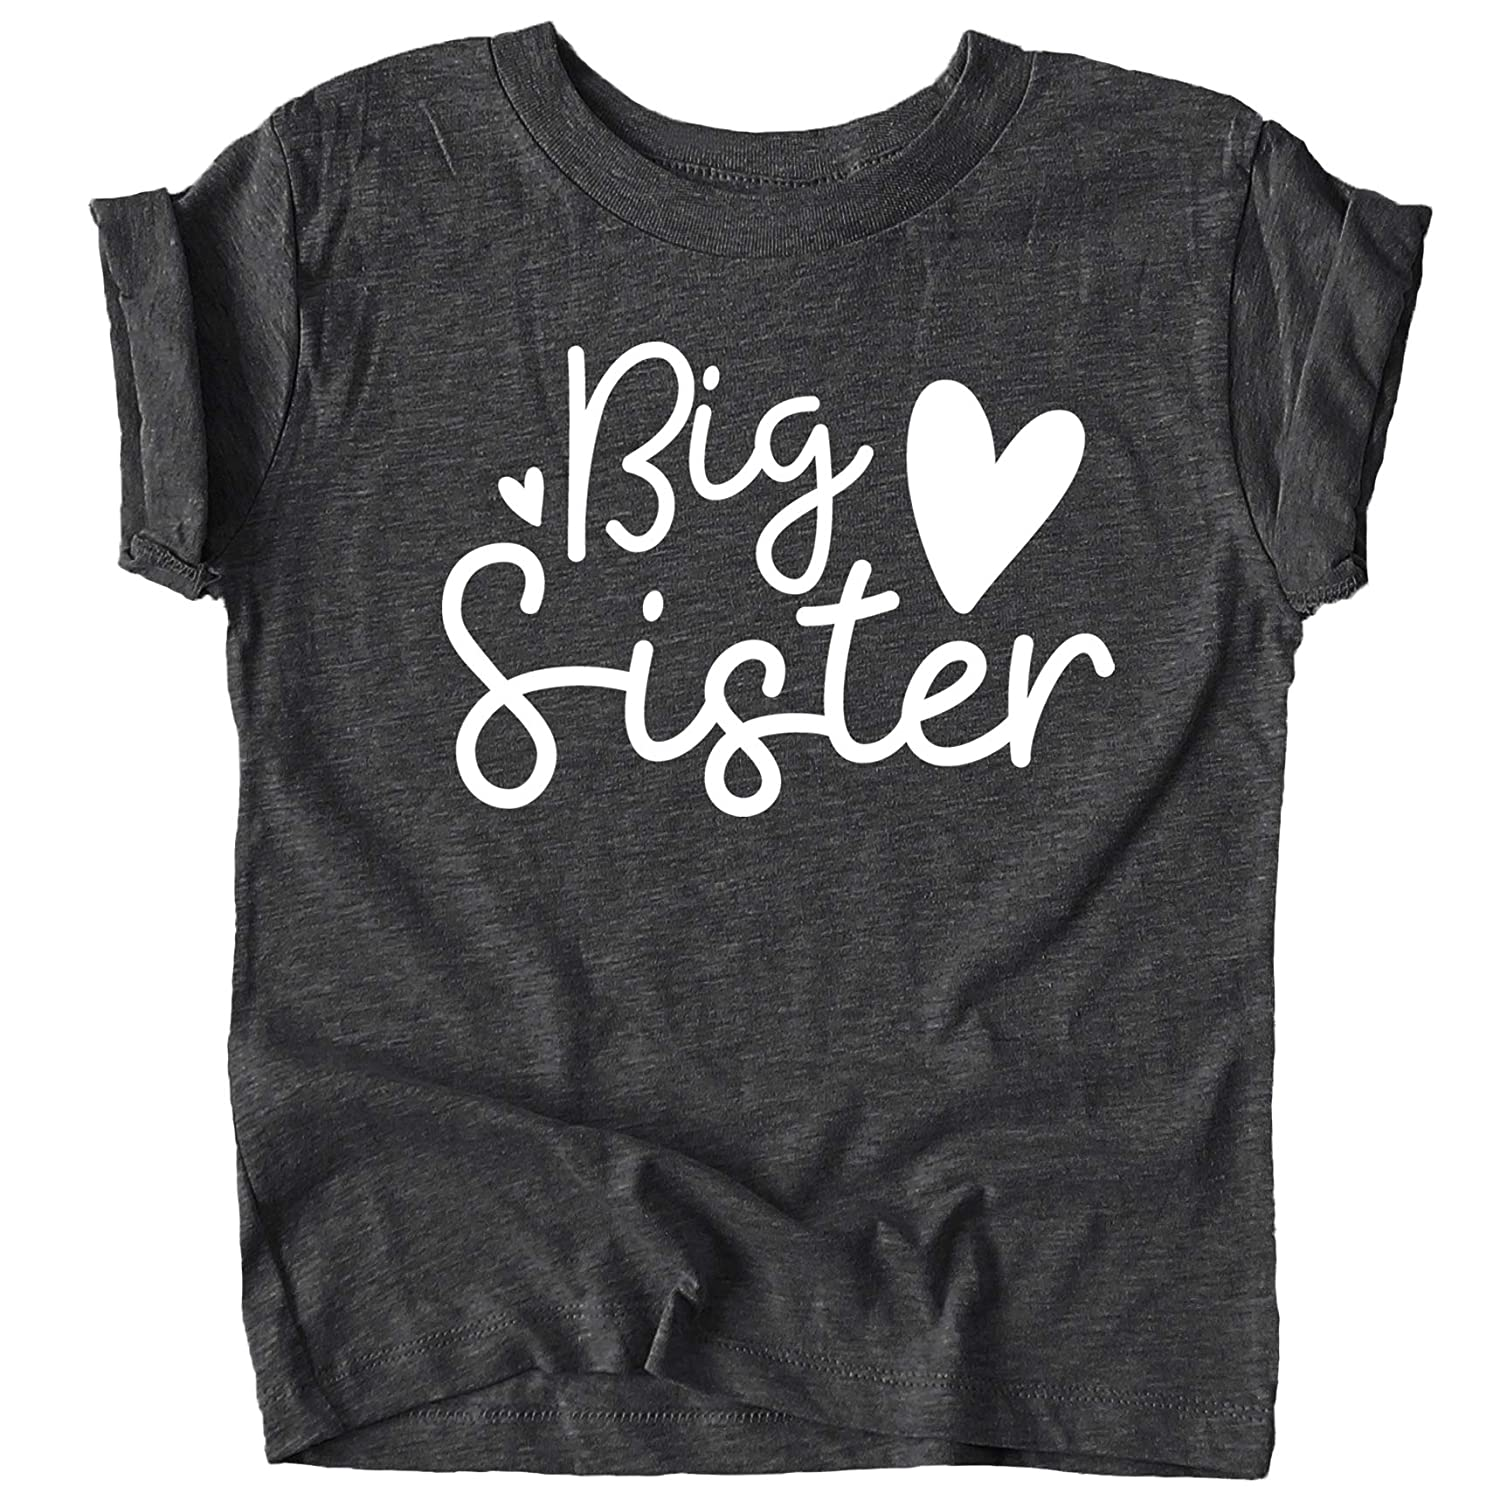 Olive Loves Apple Cursive Big Sister Hearts Sibling Reveal T-Shirt for Baby and Toddler Girls Sibling Outfits